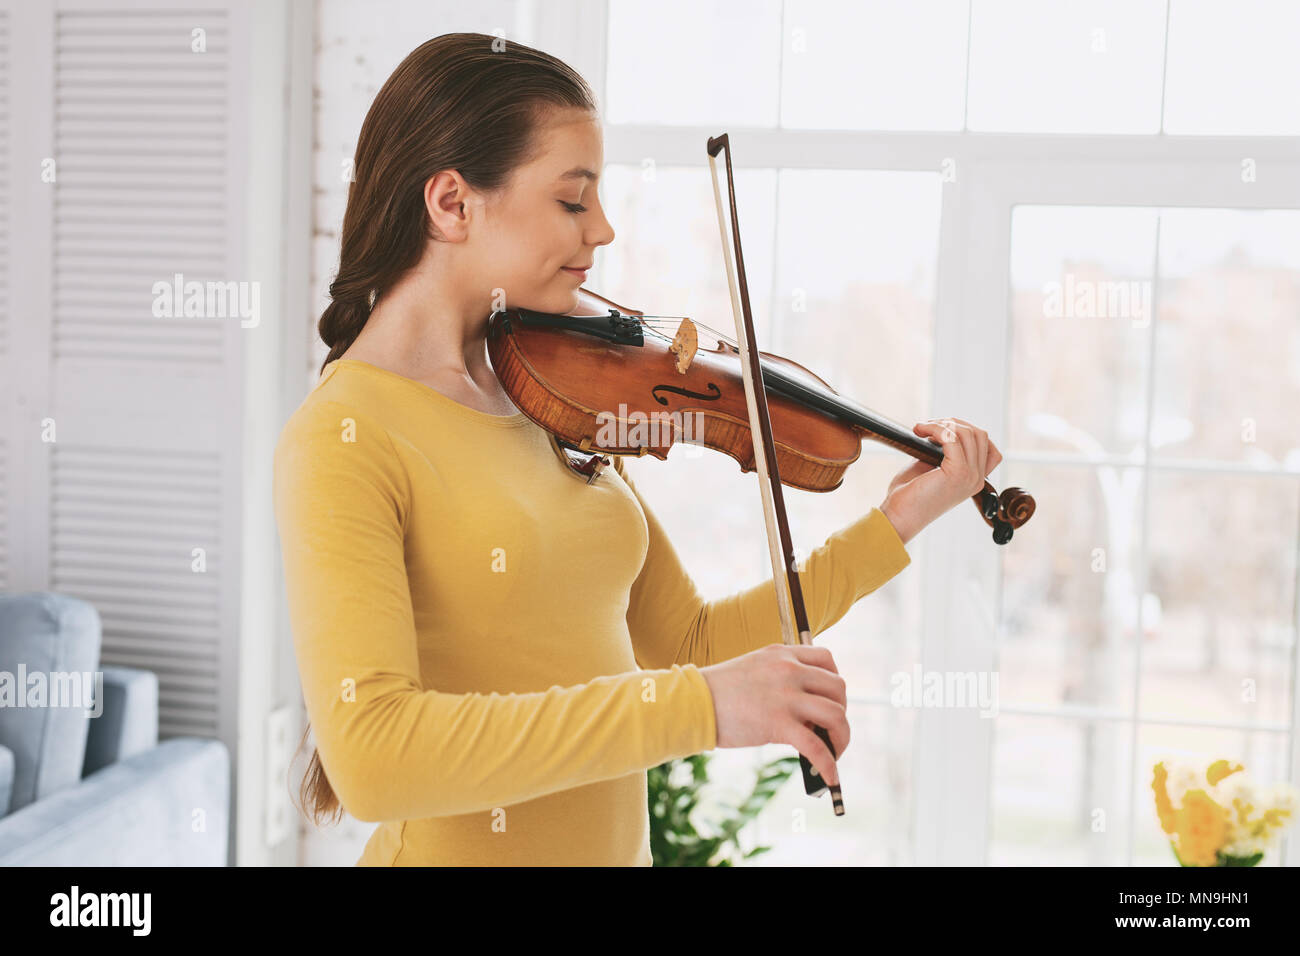 Attentive female person practicing new work - Stock Image